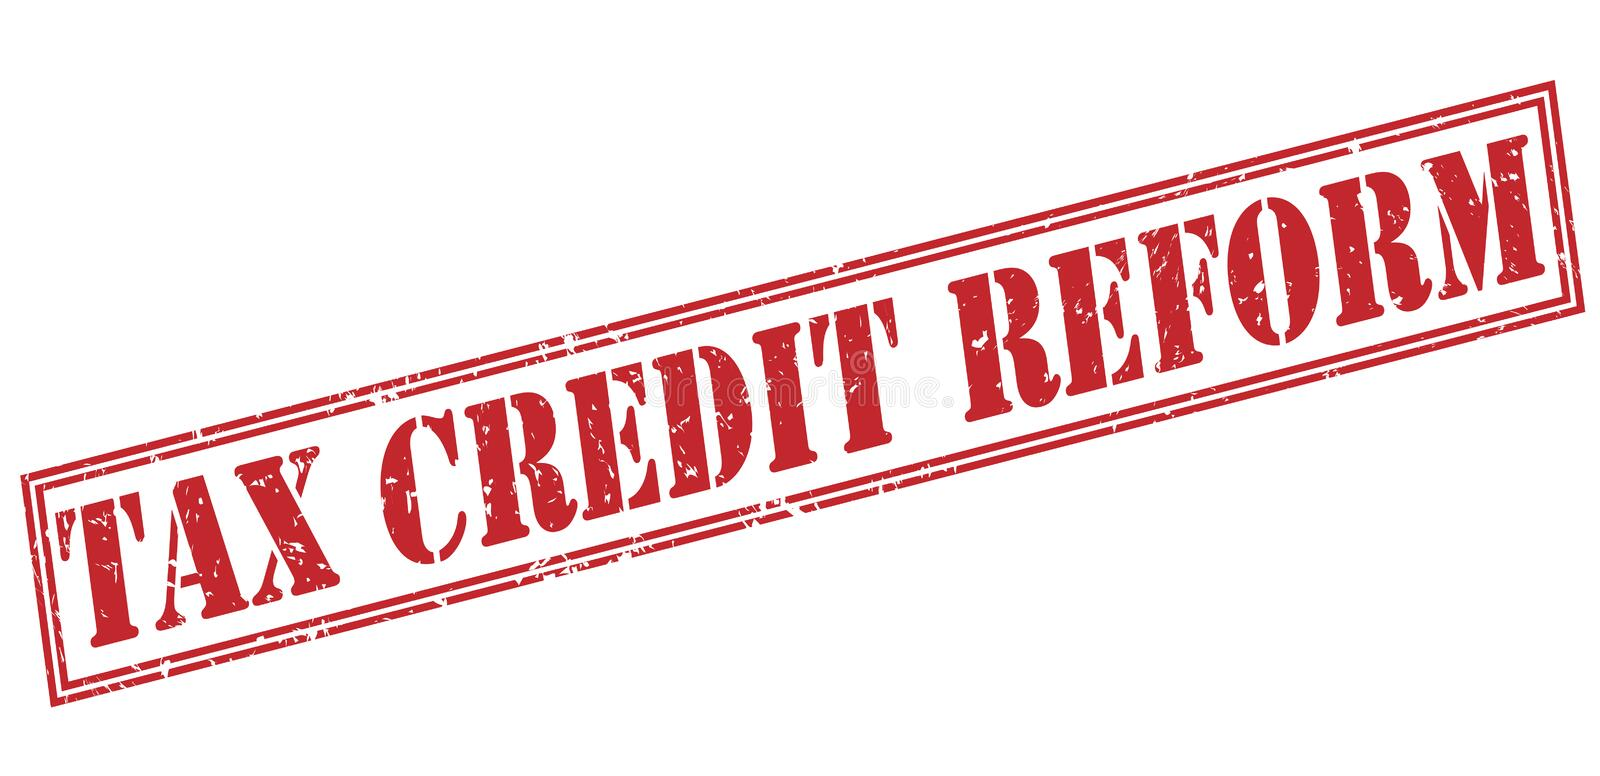 Tax credit reform red stamp royalty free illustration